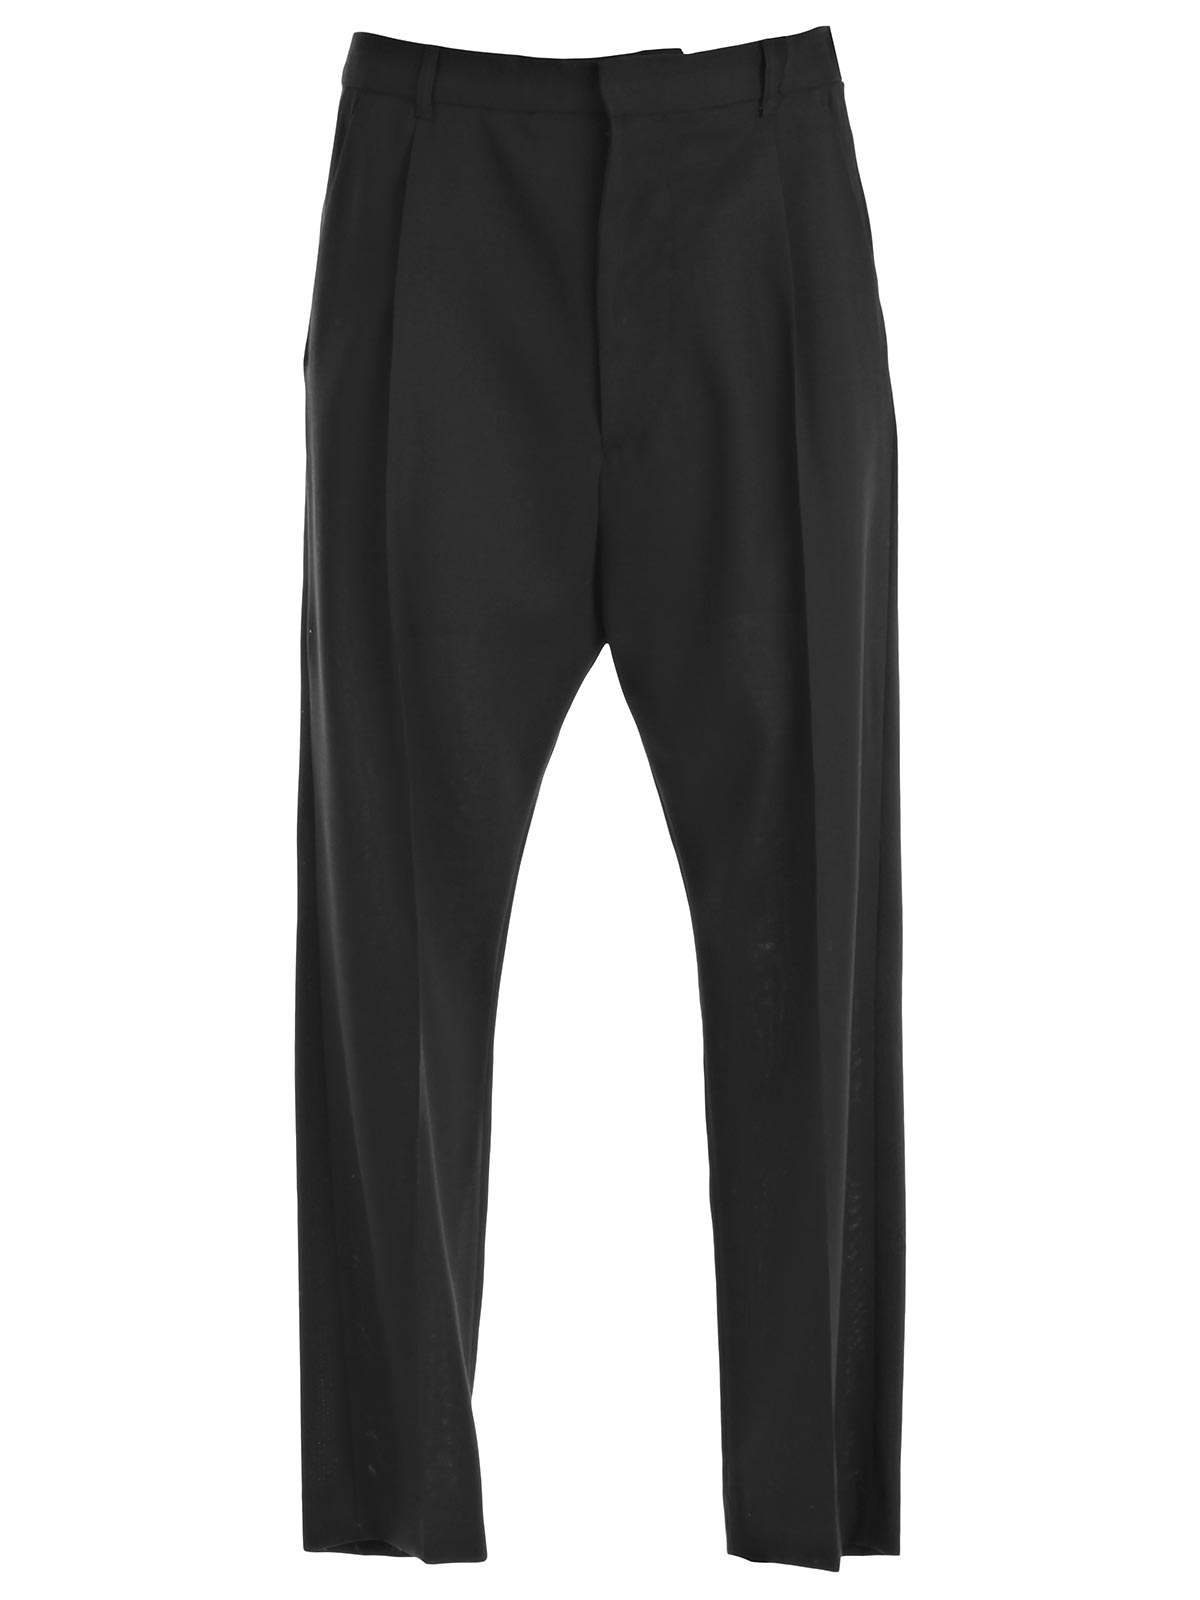 Picture of ANN DEMEULEMESTER GRISE TROUSERS